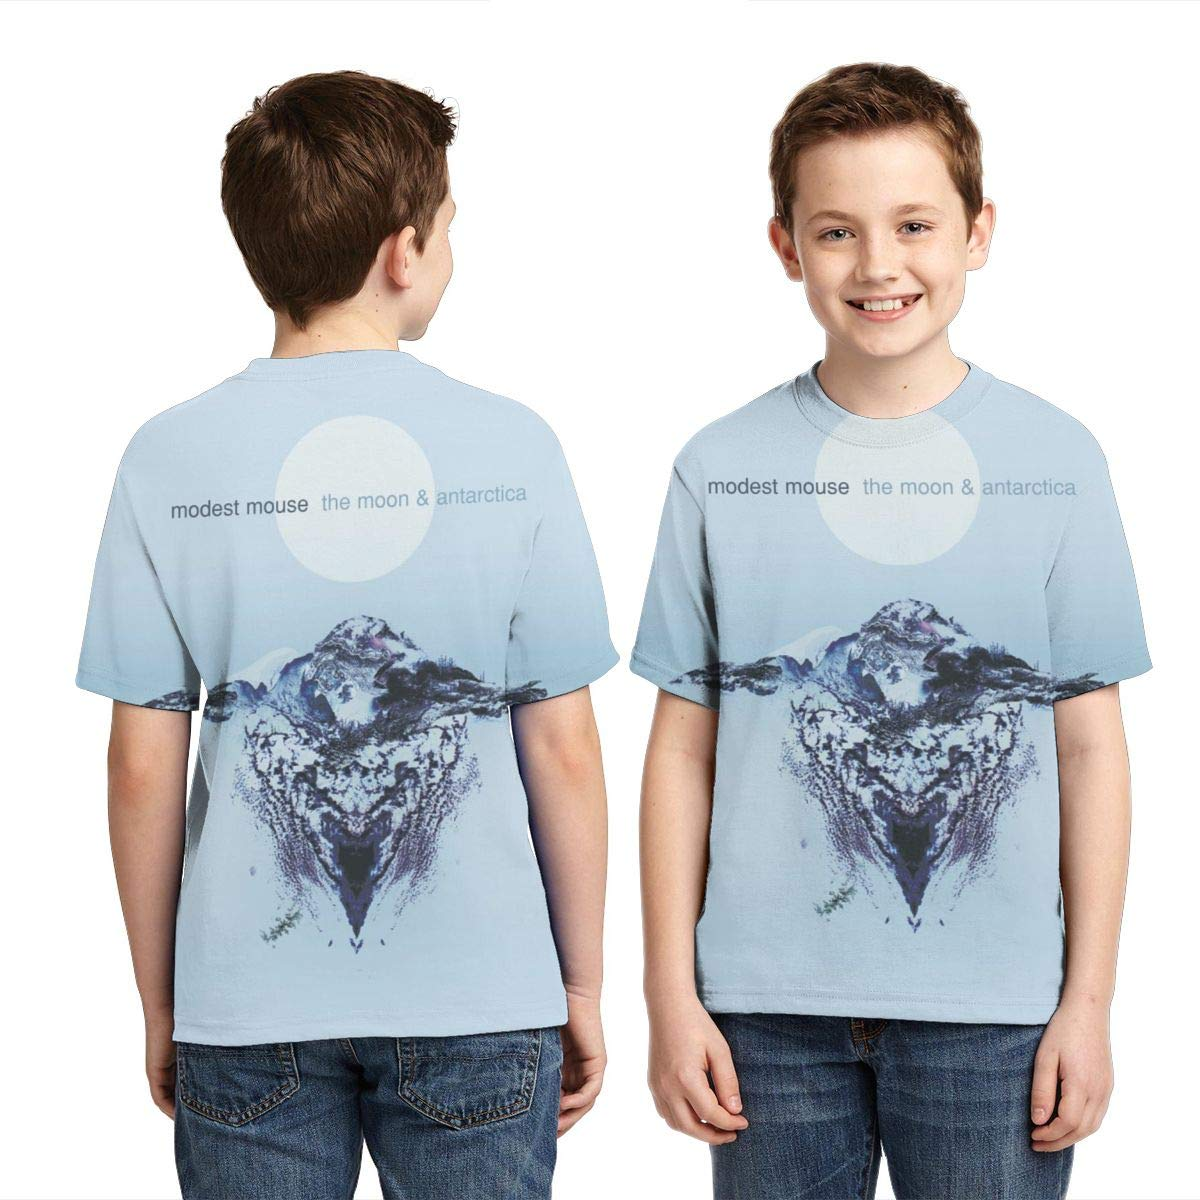 BowersJ Kids Modest Mouse The Moon /& Antarctica Design 3D Printed Short Sleeve Tee for Girls /& Boys Black